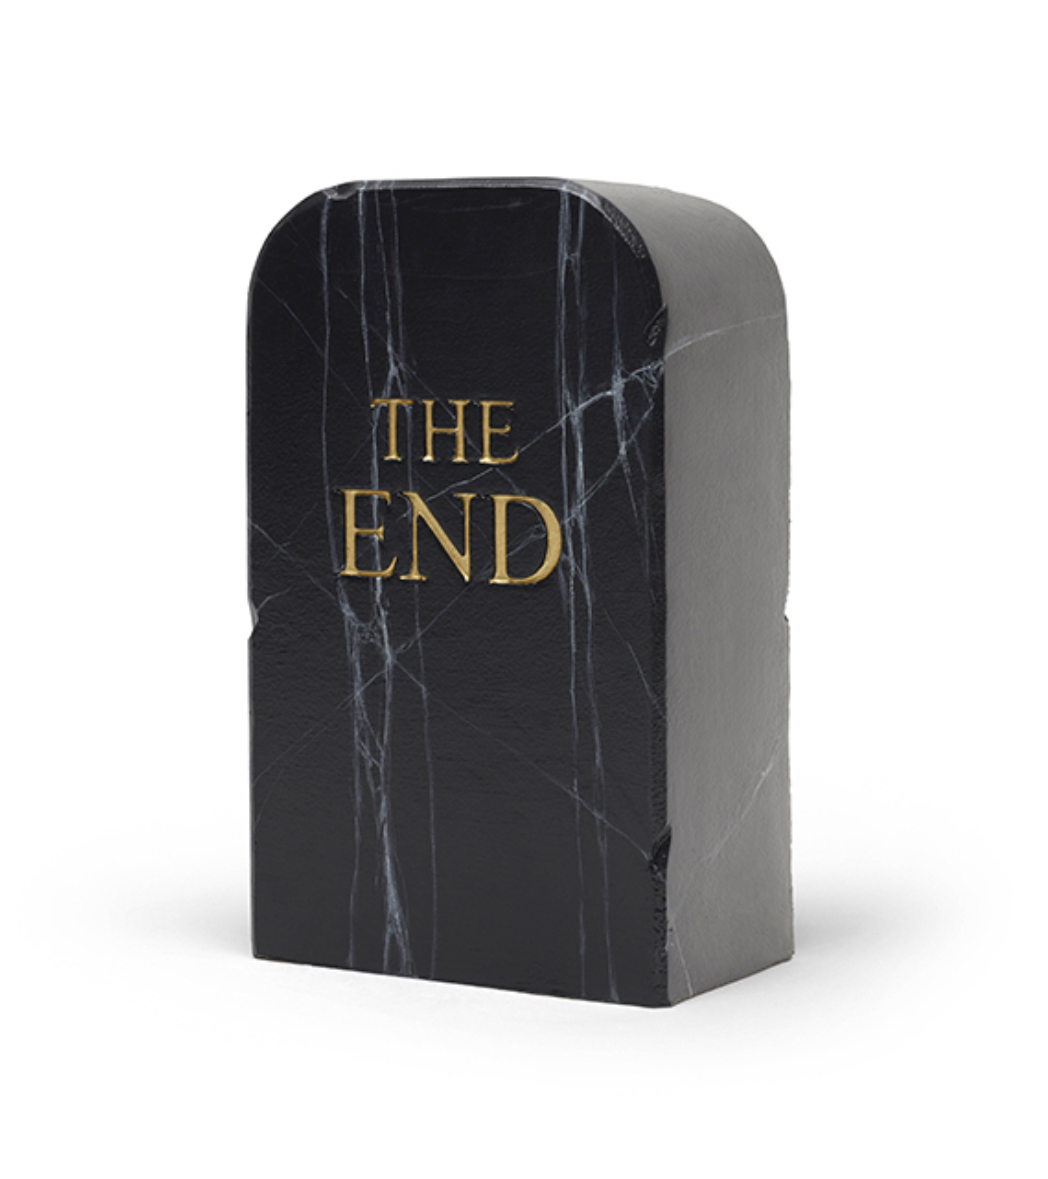 Gufram Hocker THE END BLACK